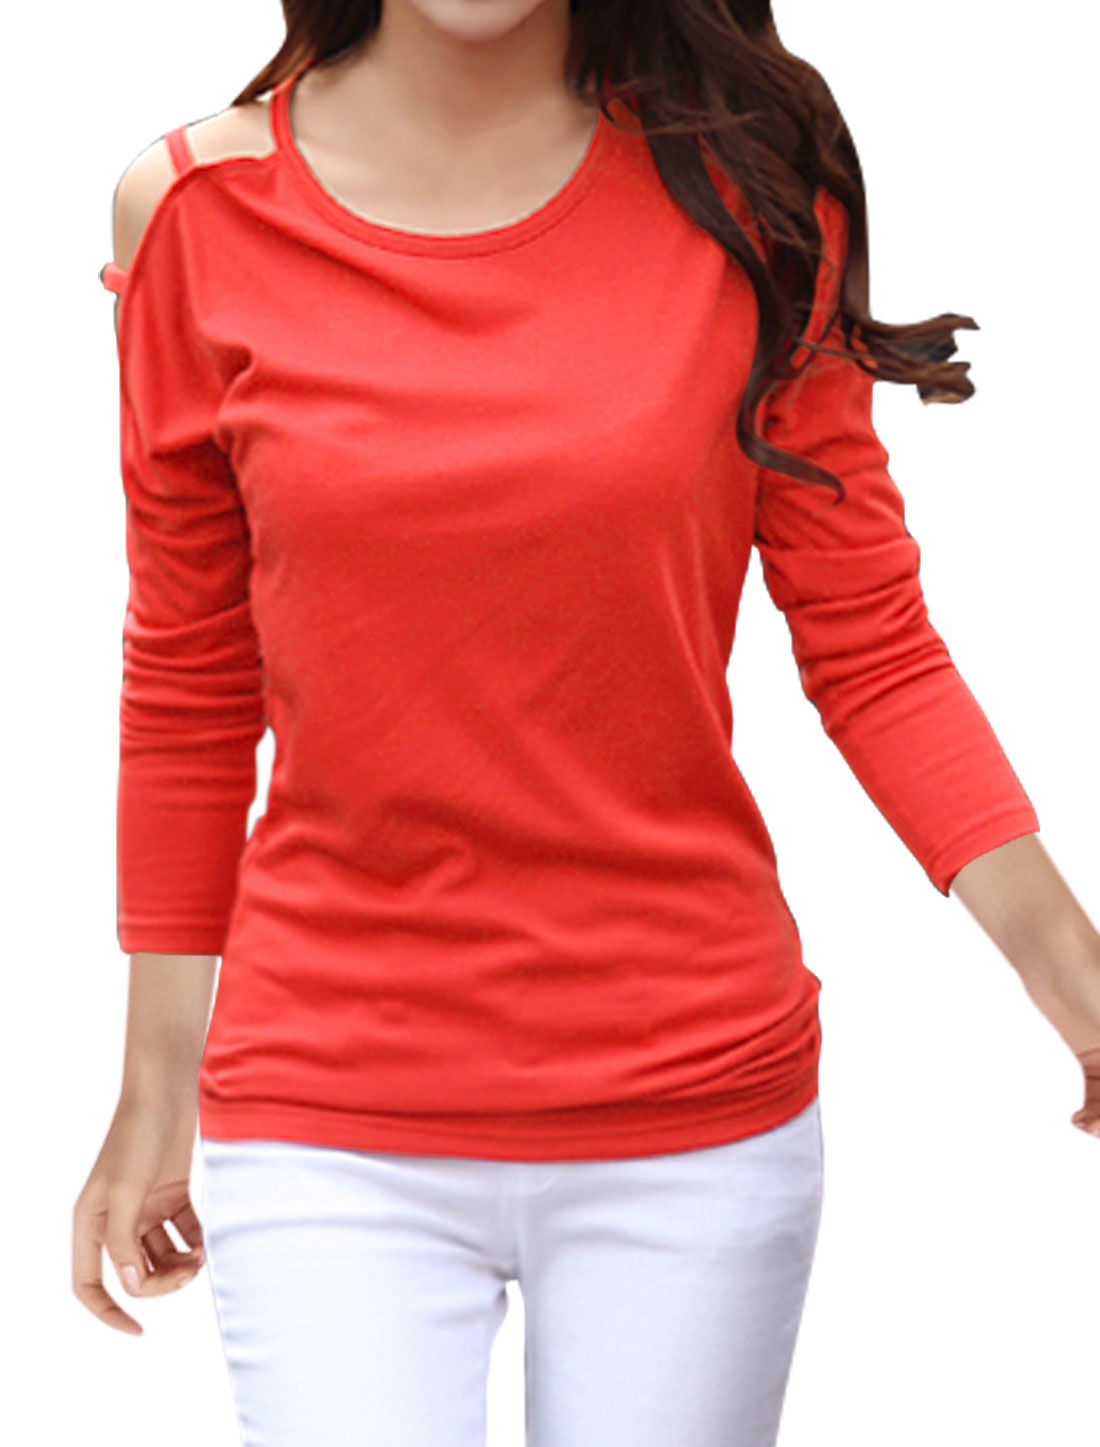 Women Round Neck Cut Out Dolman Sleeves Top Red M